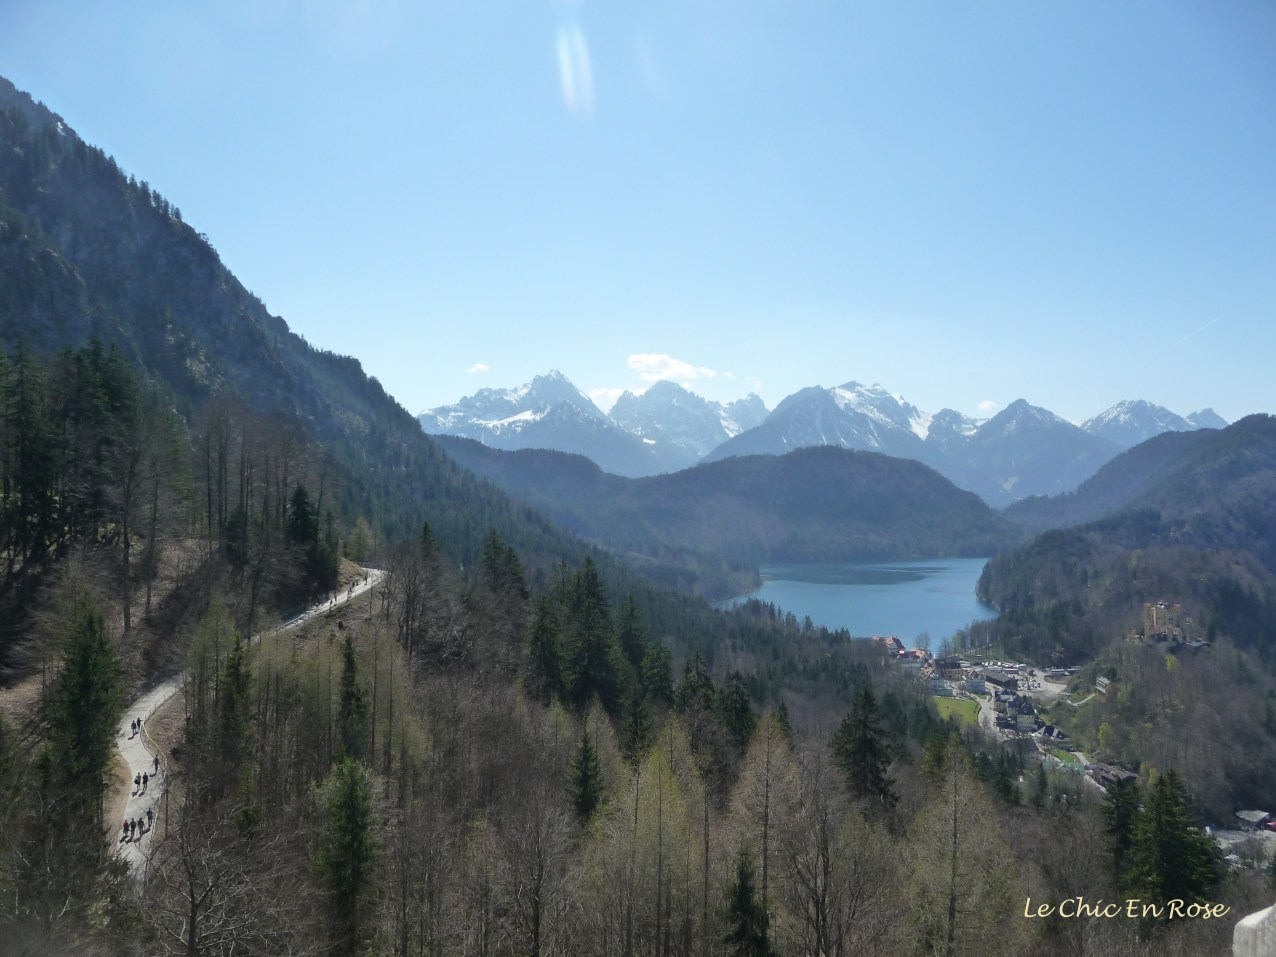 View from the Neuschwanstein balcony here looking down on the Hohenschwangau Village and Castle